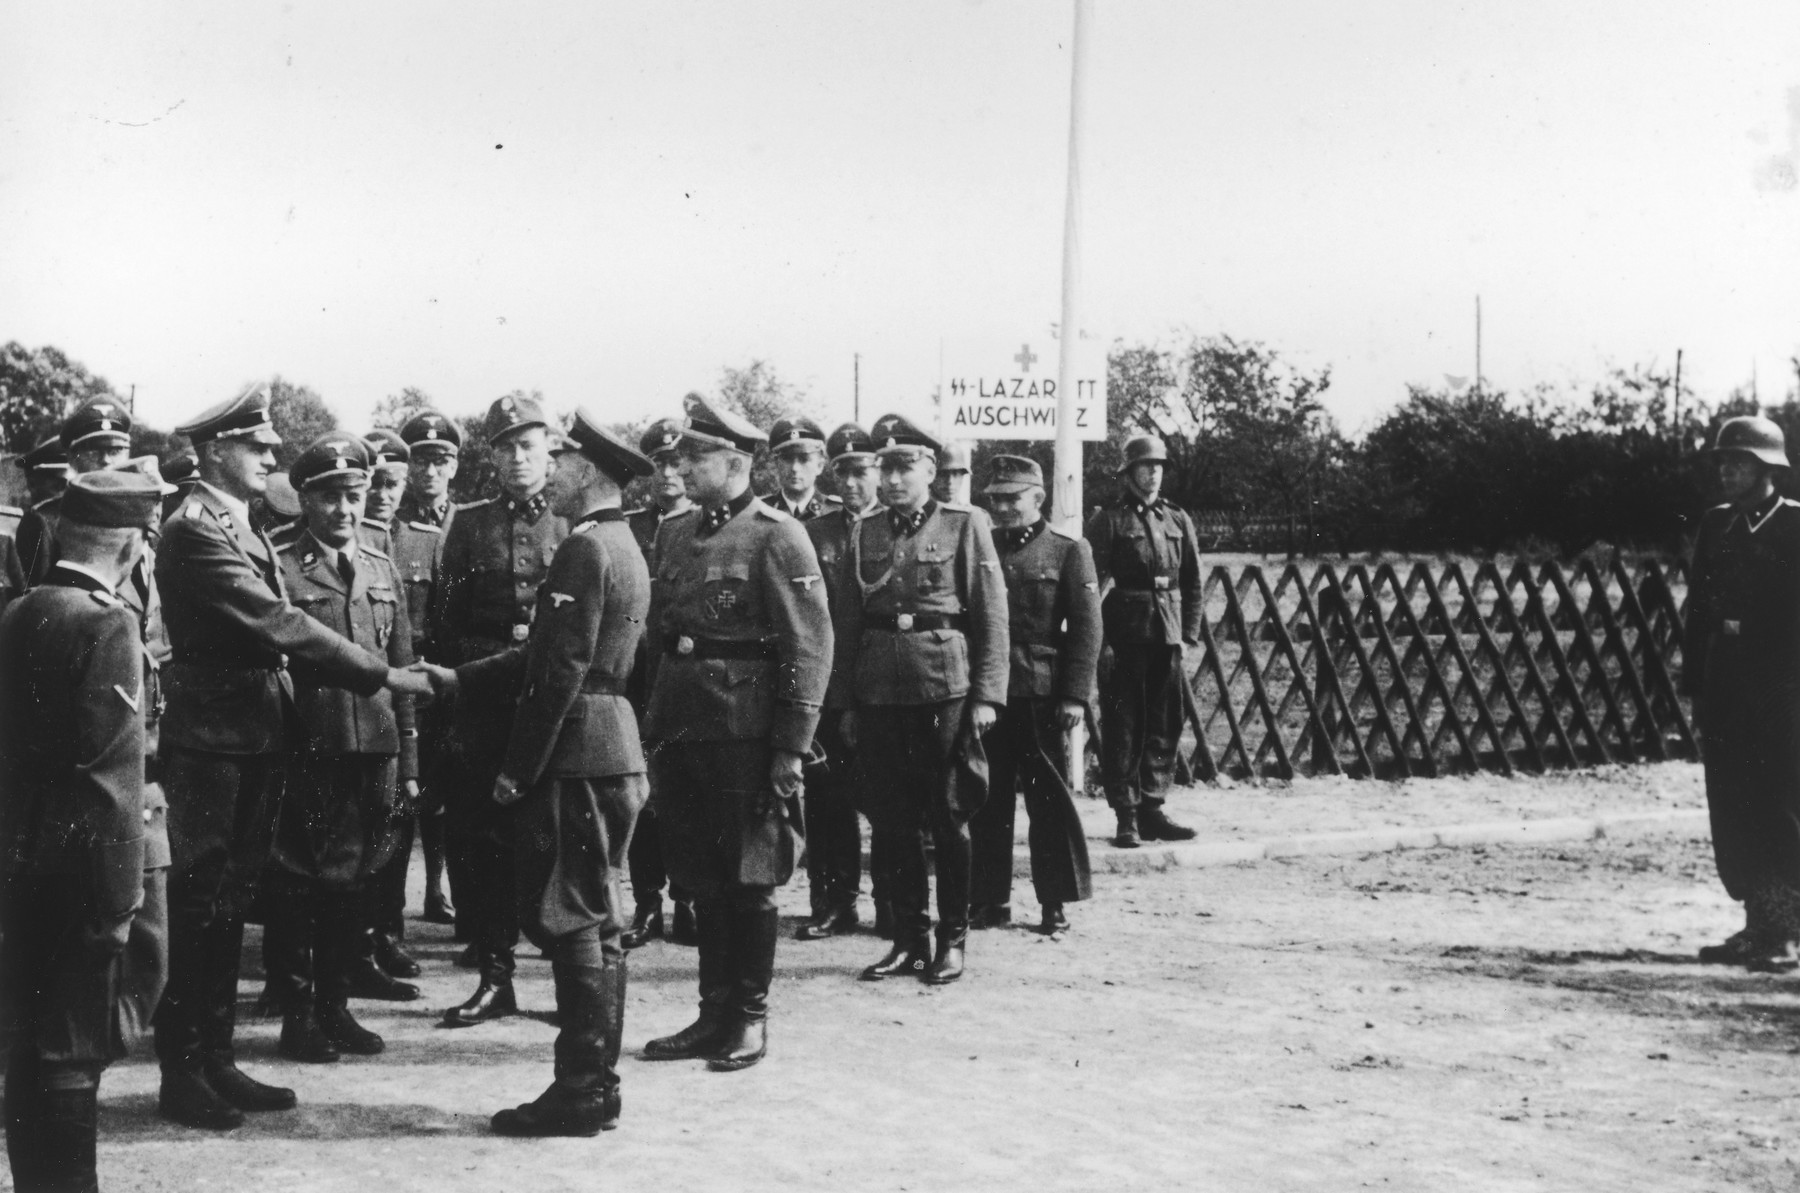 """Dr. Lolling shakes the hand of Dr. Eduard Wirths during the dedication of the new SS hospital in Auschwitz.  The original caption reads """"Die Ubergabe"""" (the handover).  The ceremony marks the transfer of documents and authority from the construction department to the camp upon completion of the project.  Next to Dr. Wirths is Karl Bischoff, head of construction in Silesia. Standing in the background, between the doctors, (is probably August Harbaum, adjutant to Richard Gluecks).  Standing on the left with his back to the camera is Rudolf Hoess.  Dr. Wirths also received his promotion to Sturmbannfuehrer and decorated with the War Service Cross 1st Class at the same time and this might be what is being portrayed here."""